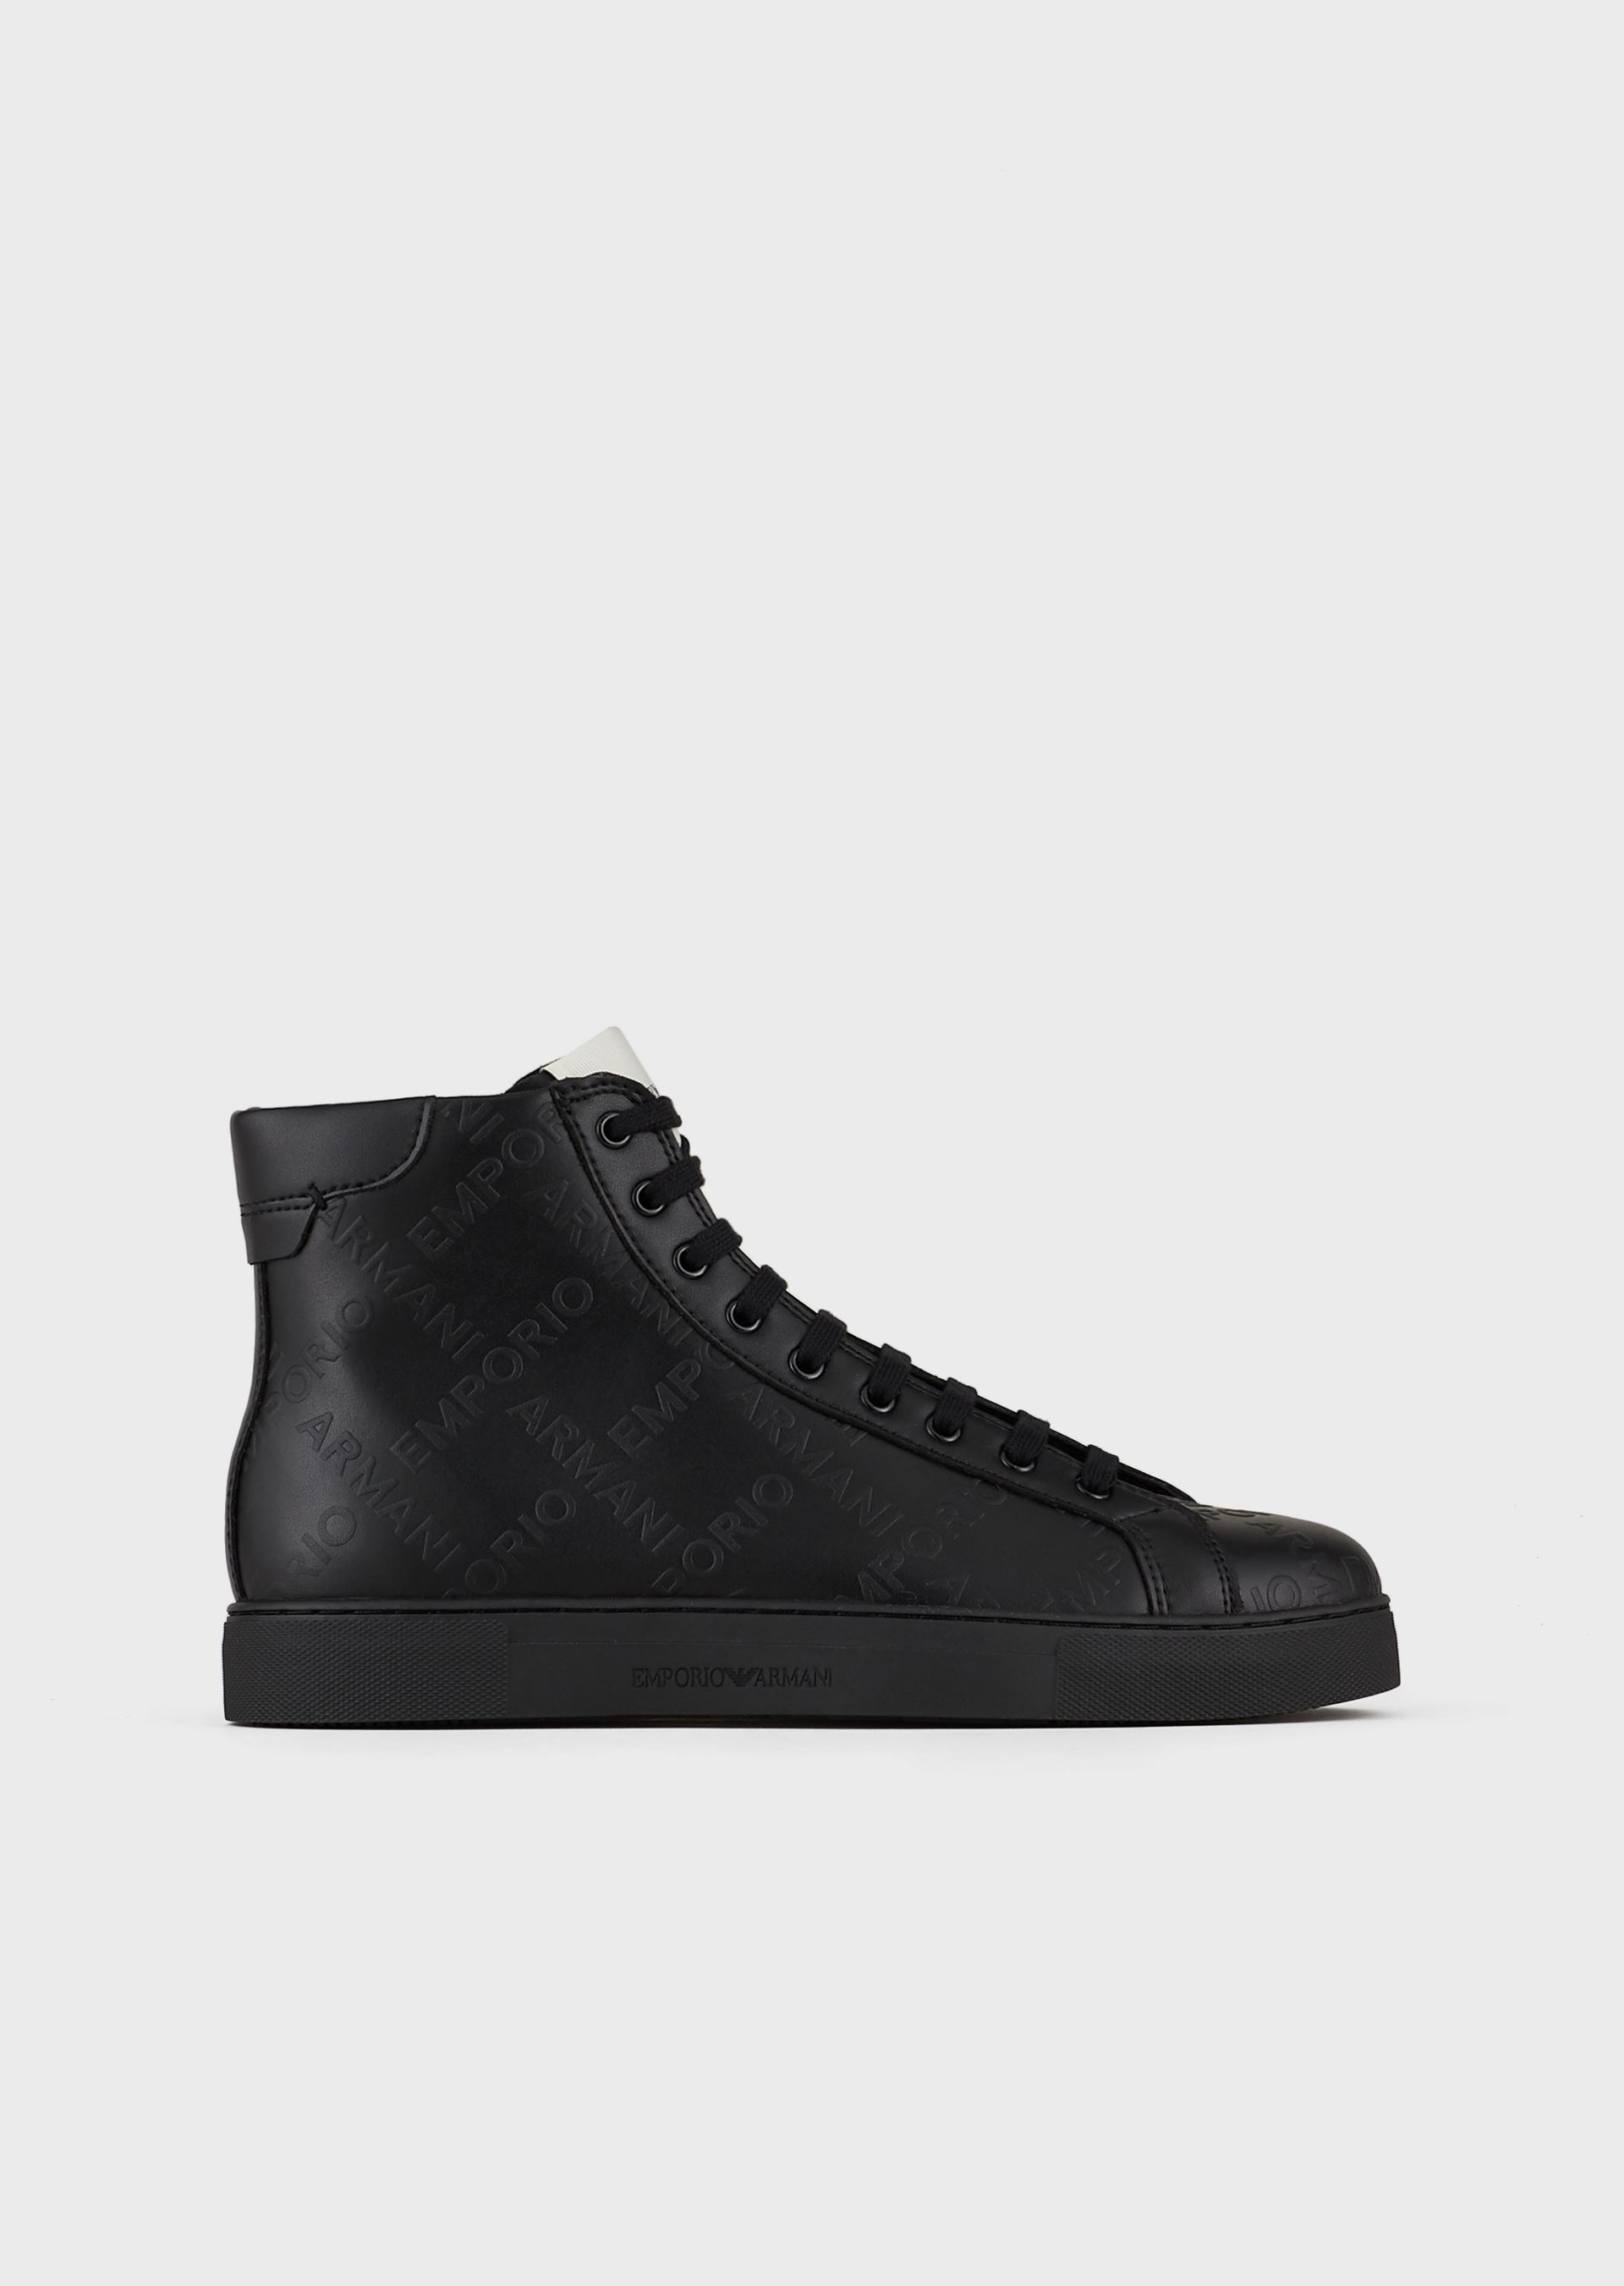 EMPORIO ARMANI Leather high-top sneakers with all-over, embossed logo